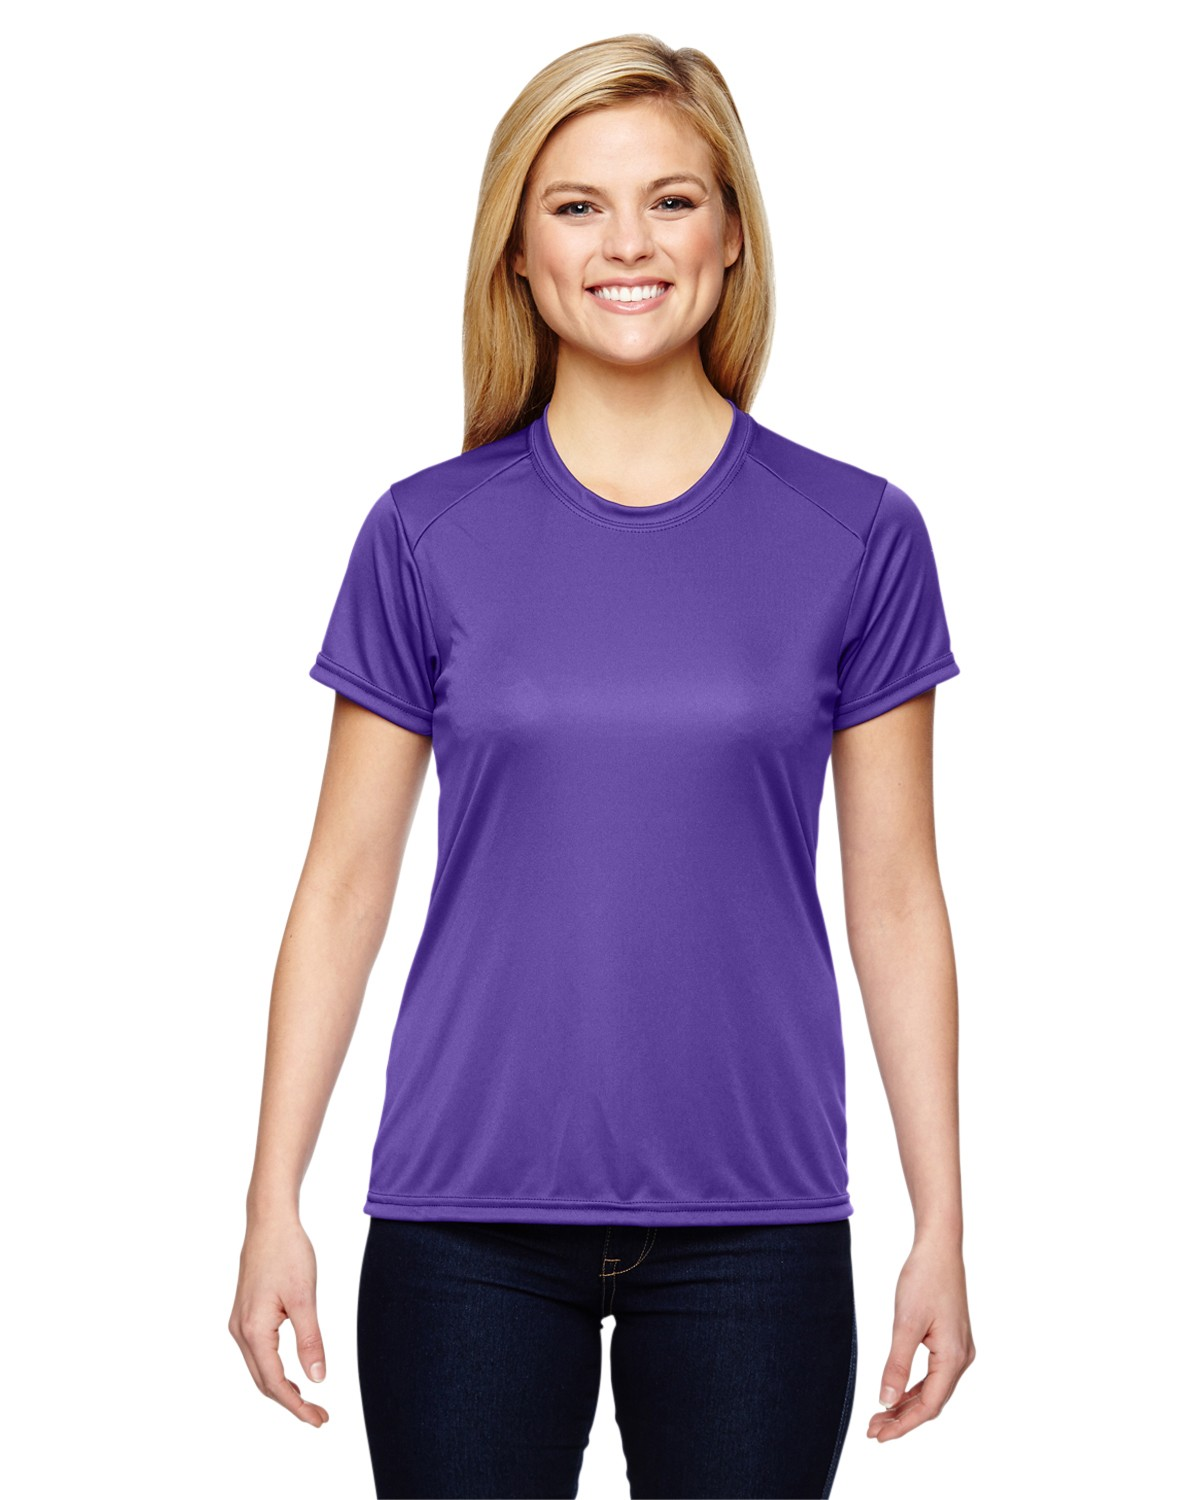 NW3201 A4 Apparel PURPLE